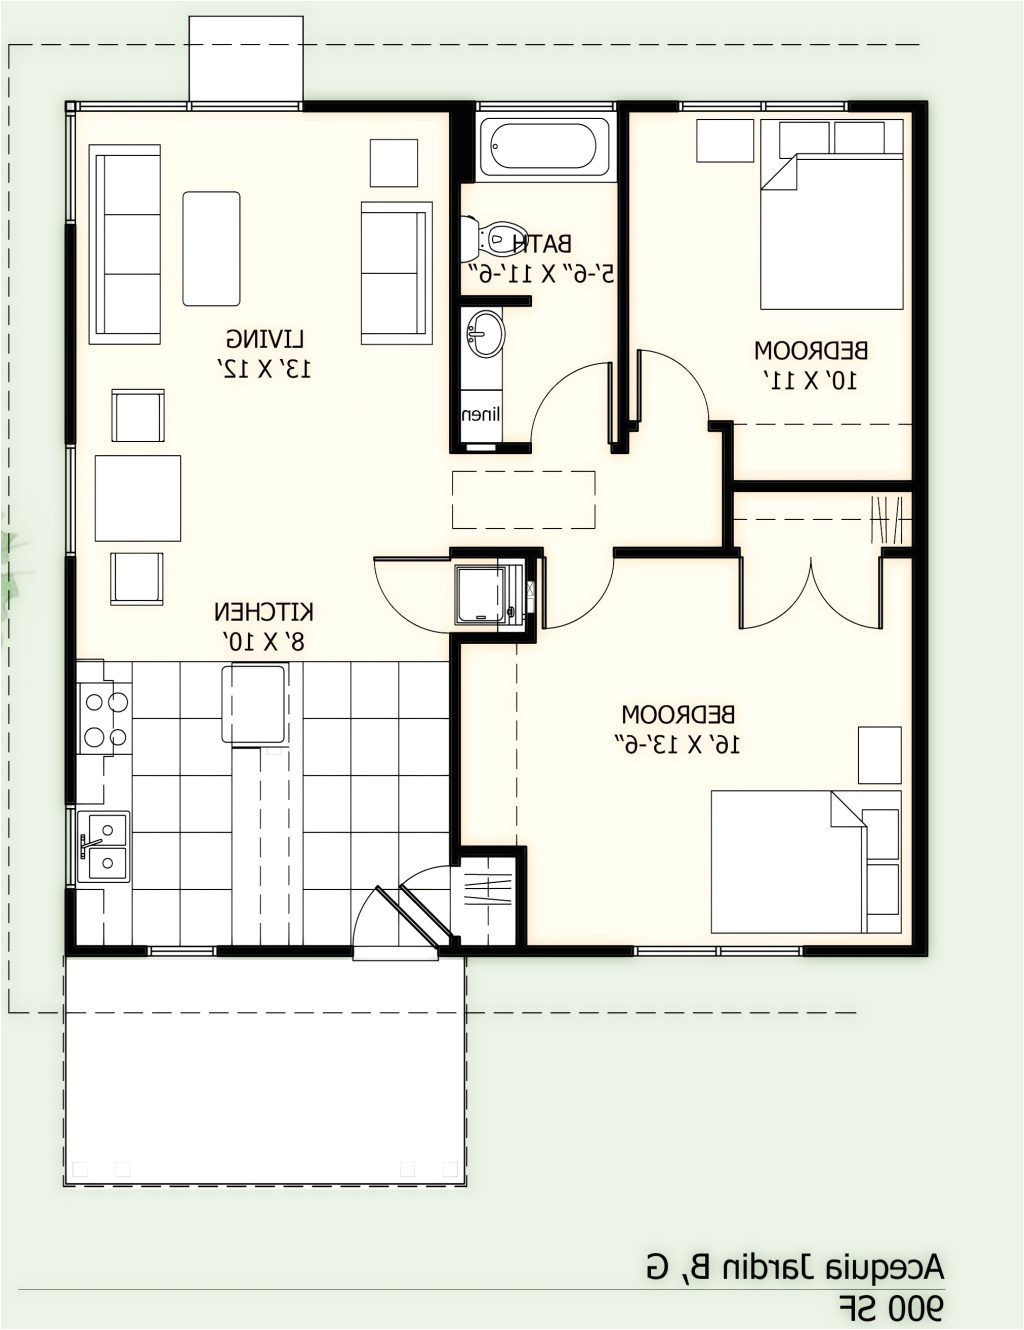 1000 sq ft indian house plans awesome duplex house designs 1200 sq ft bibserver